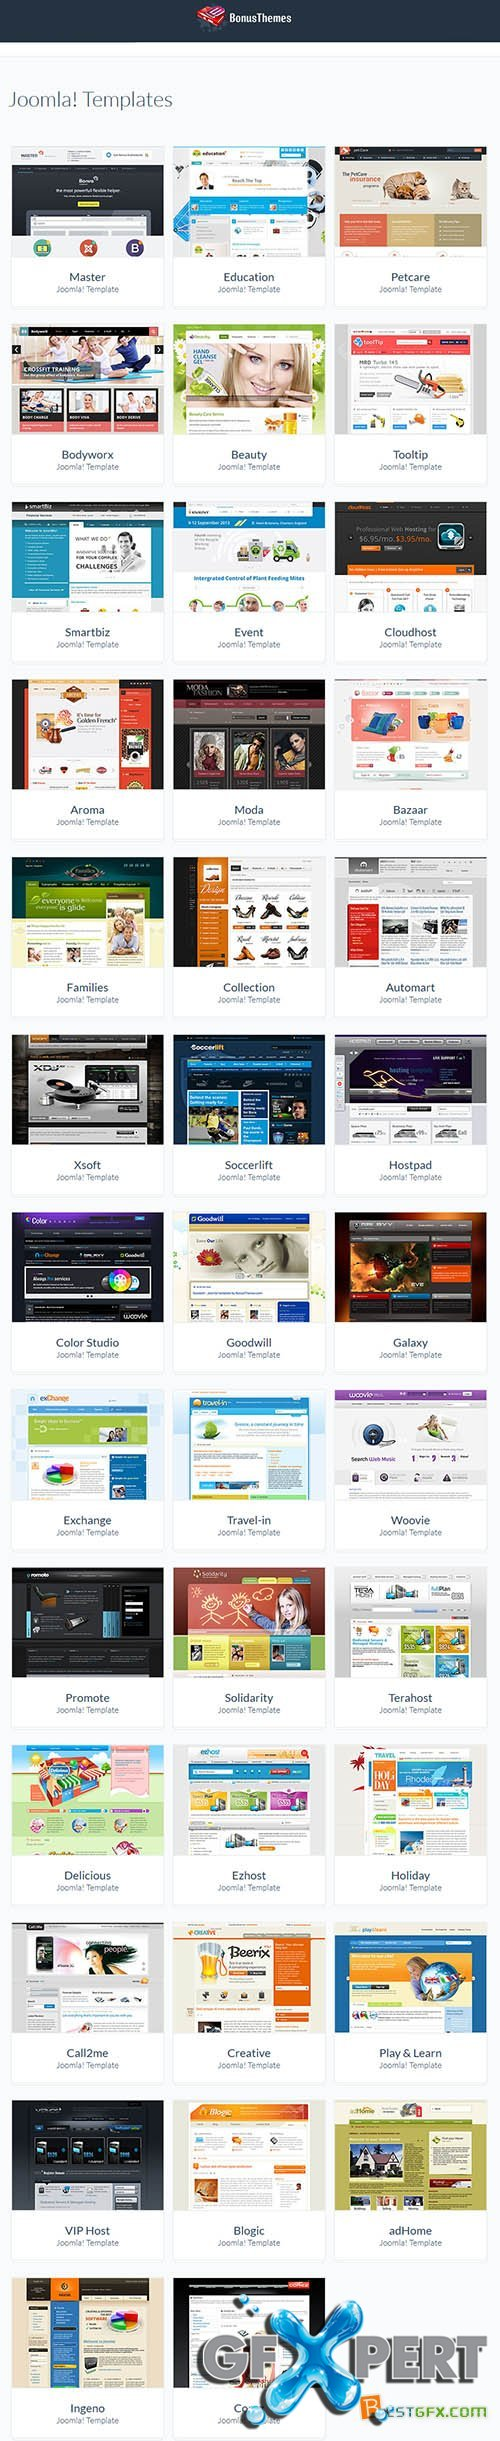 BonusThemes - All Joomla 2.5-3.x Themes Pack 2014